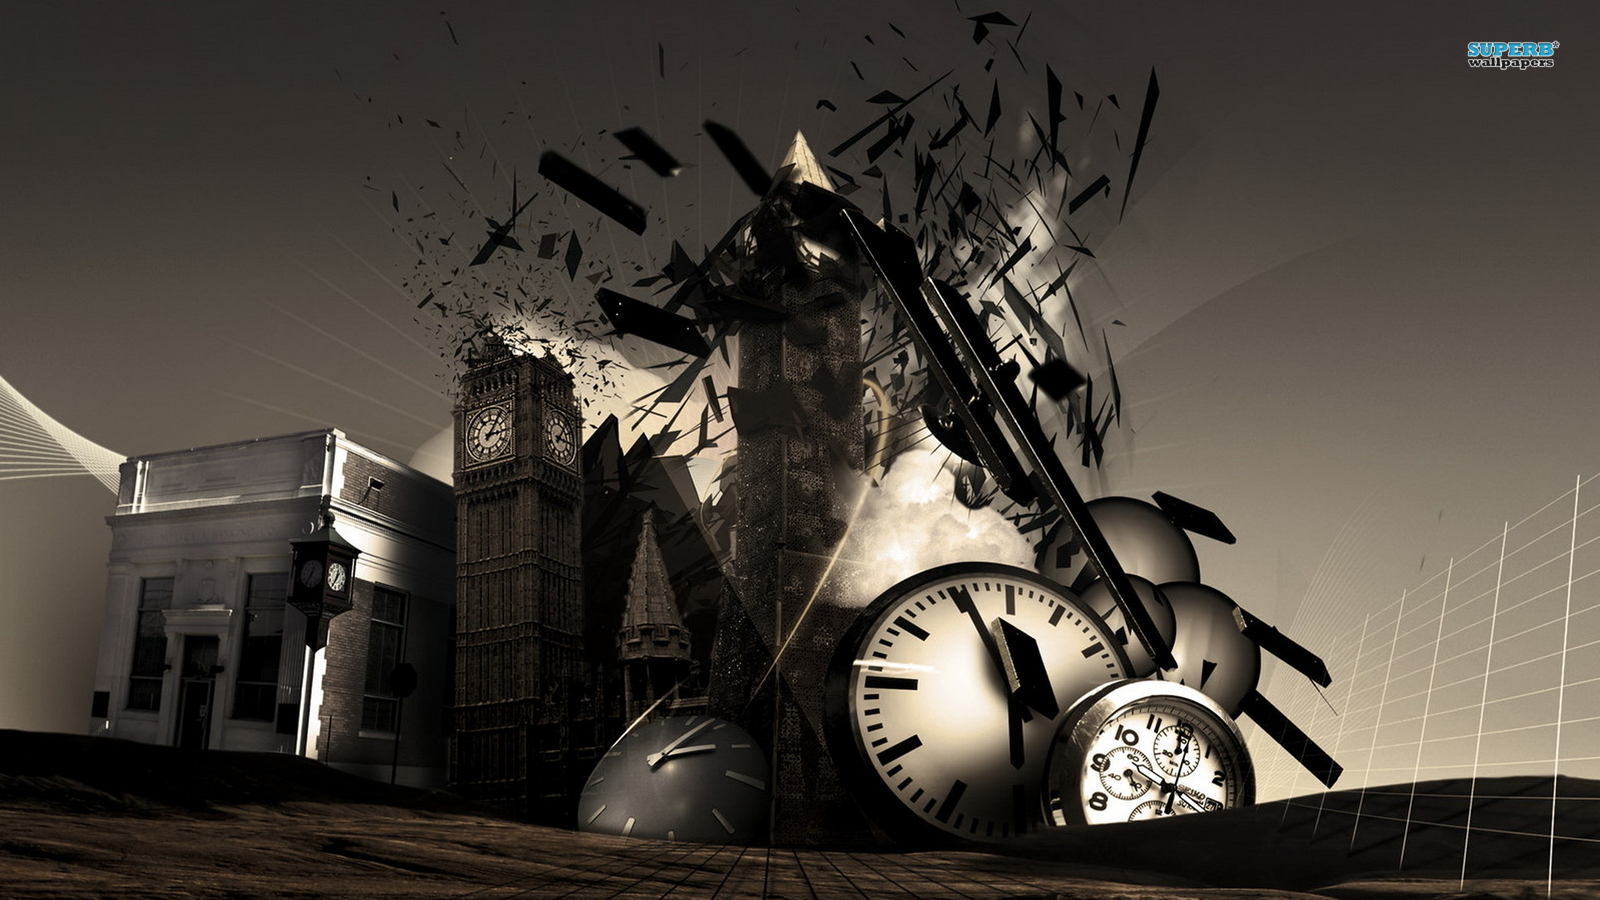 Time Travel Images Machine HD Wallpaper And Background Photos